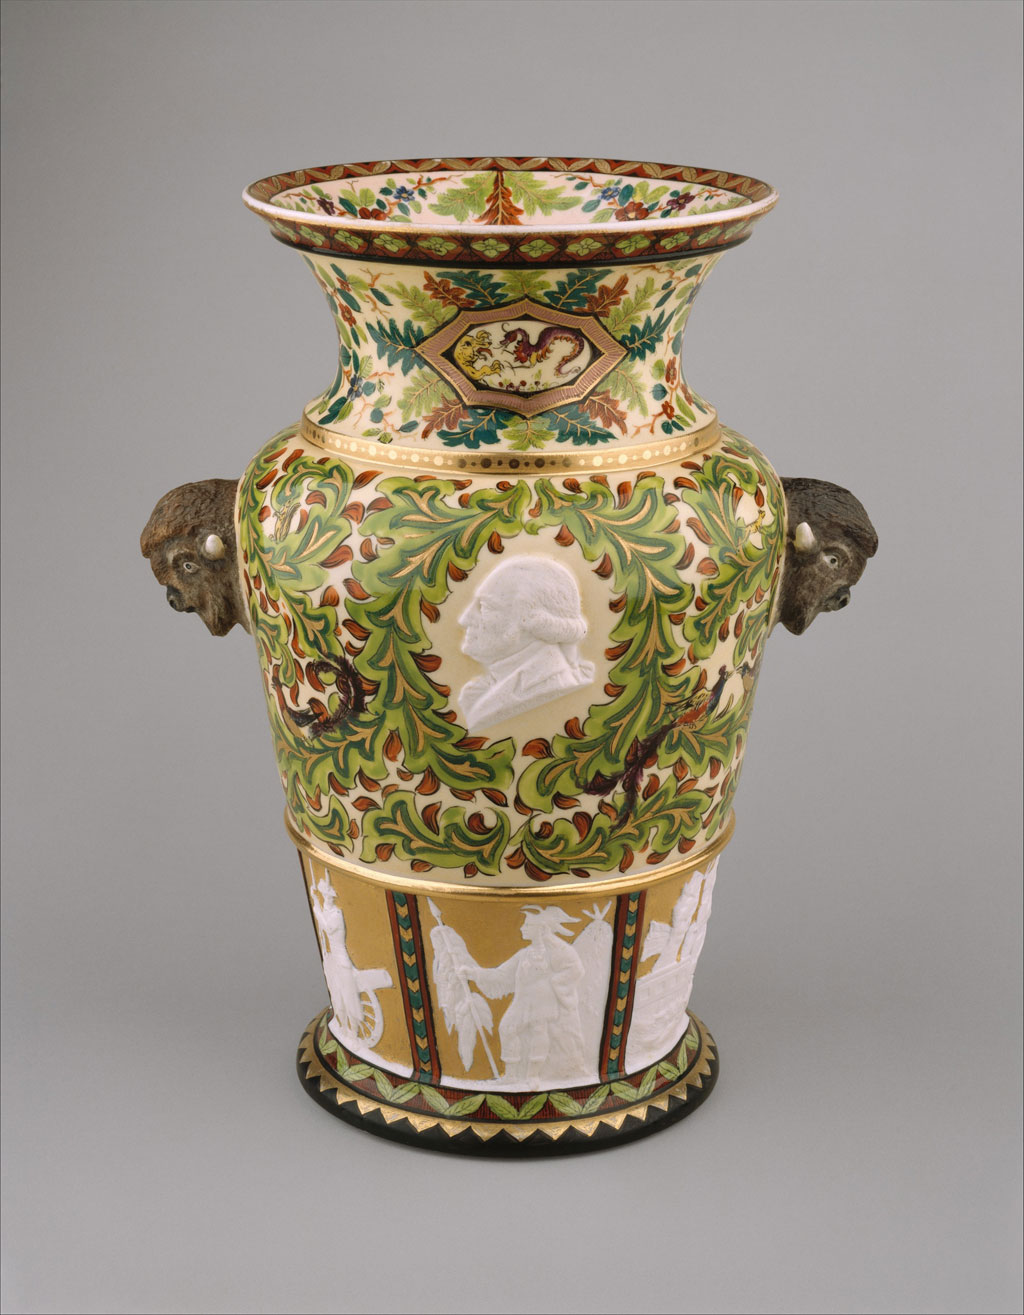 highlights from the met's collection (32)